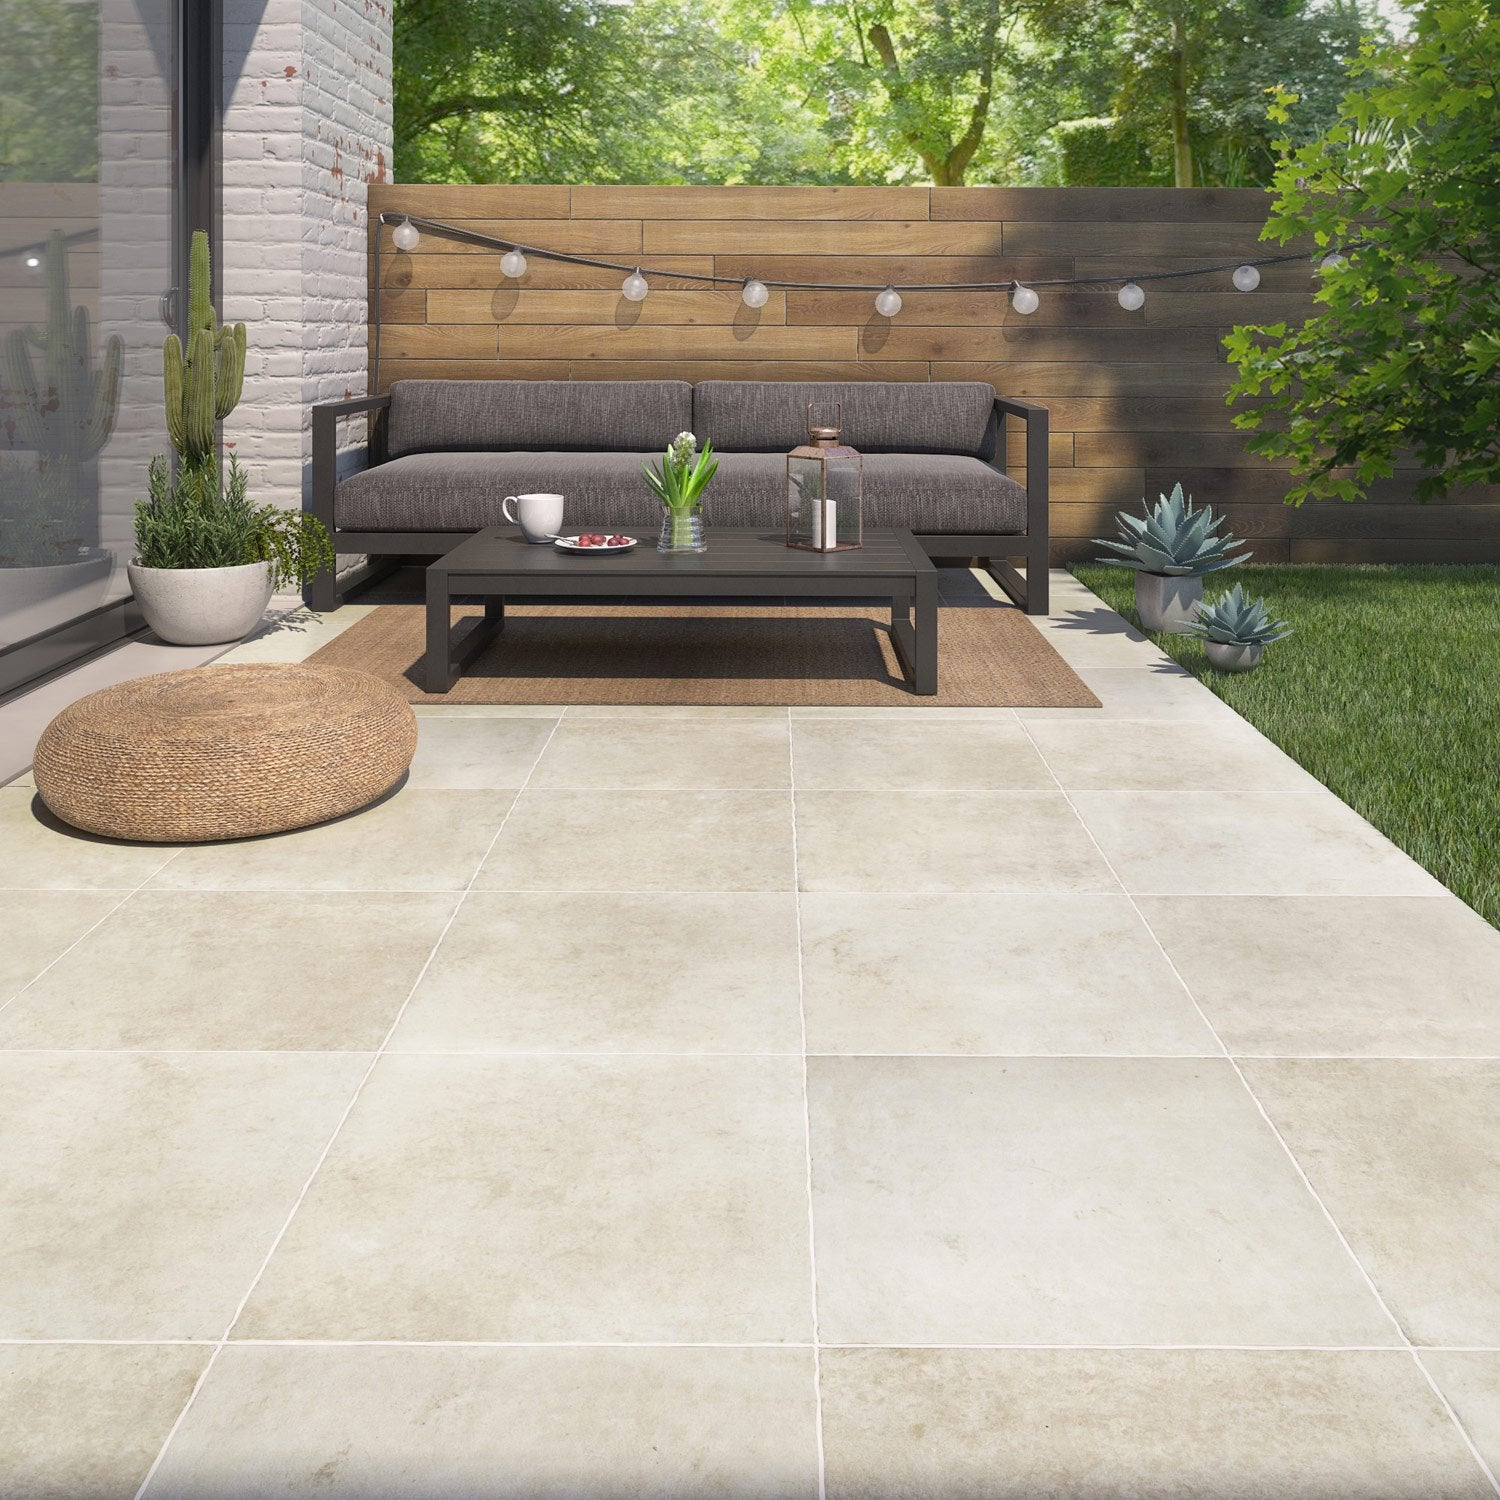 Carrelage sol et mur beige effet pierre monast re x l for Carrelage 50x50